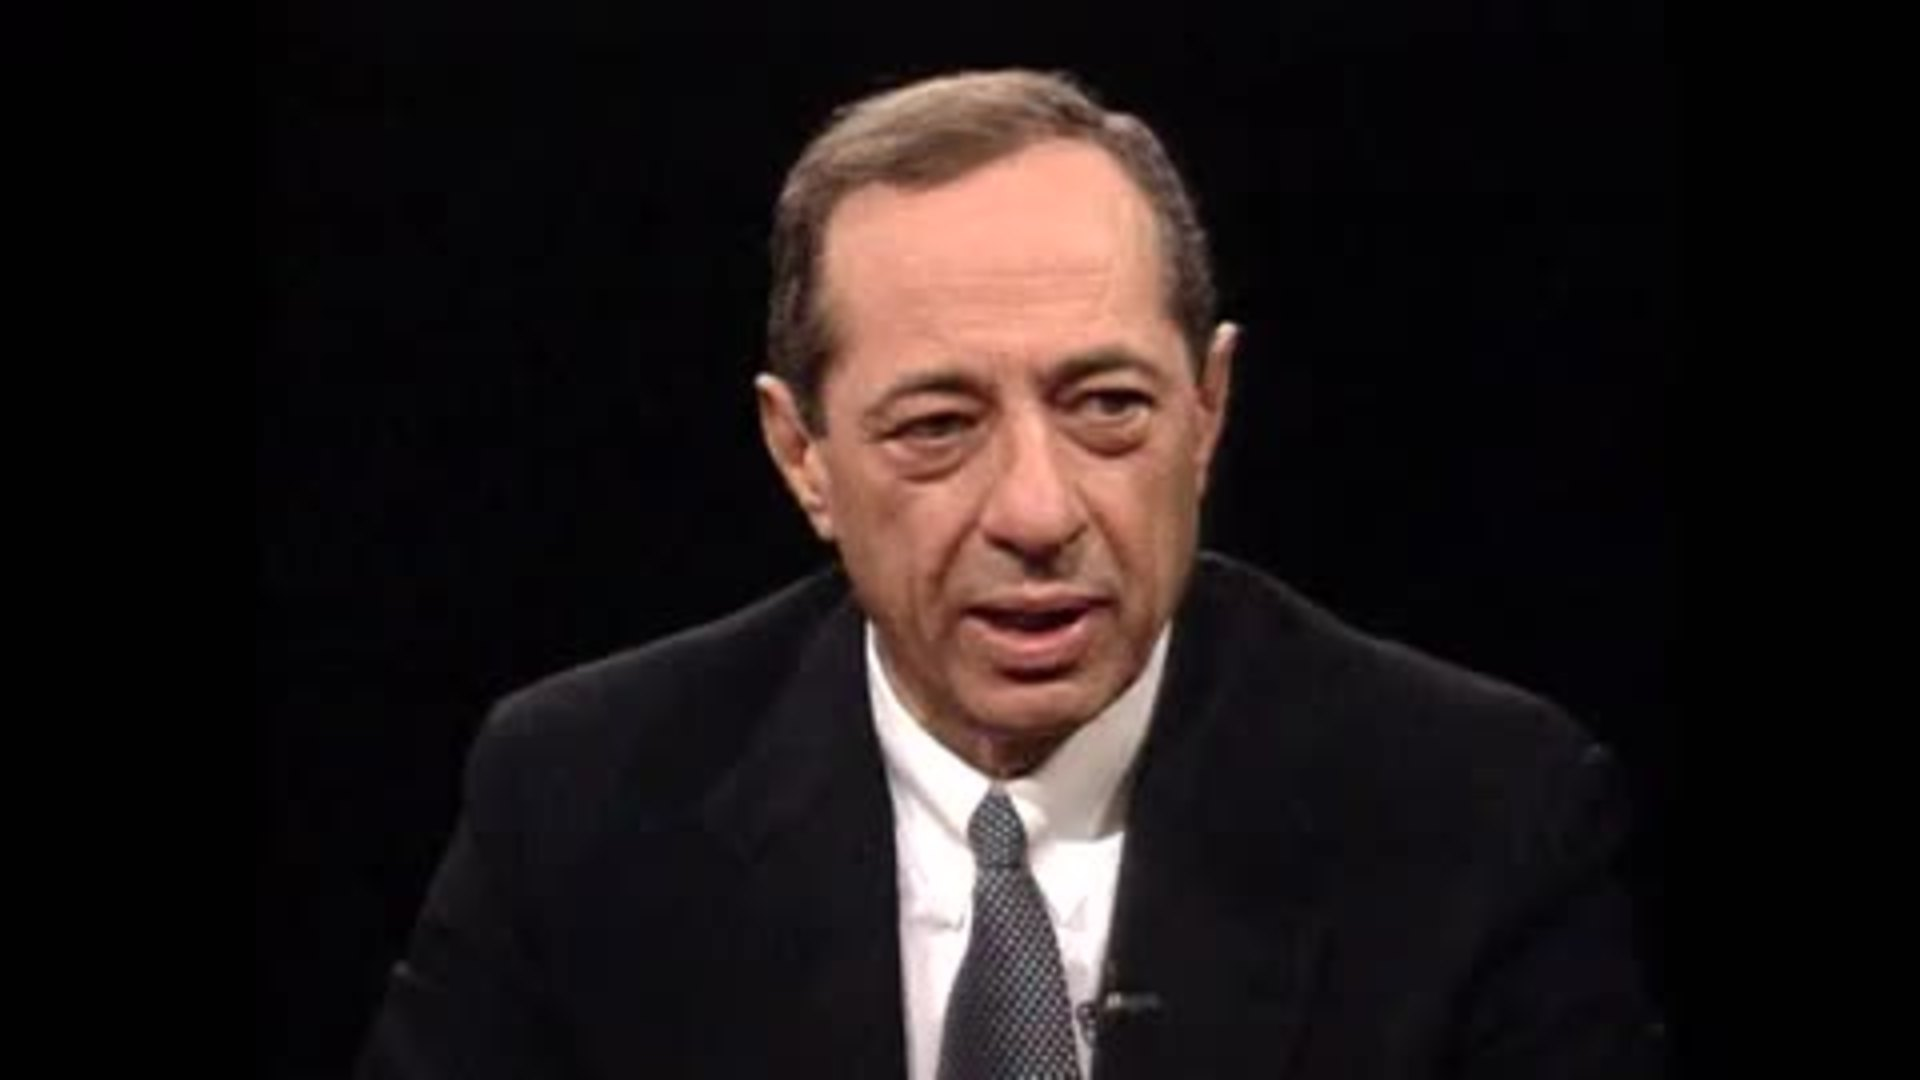 Charlie Remembers Some Of The Notable People We Lost In 2015, Including  Mario Cuomo, Yogi Berra, Bb King, El Doctorow, And Julian Bond